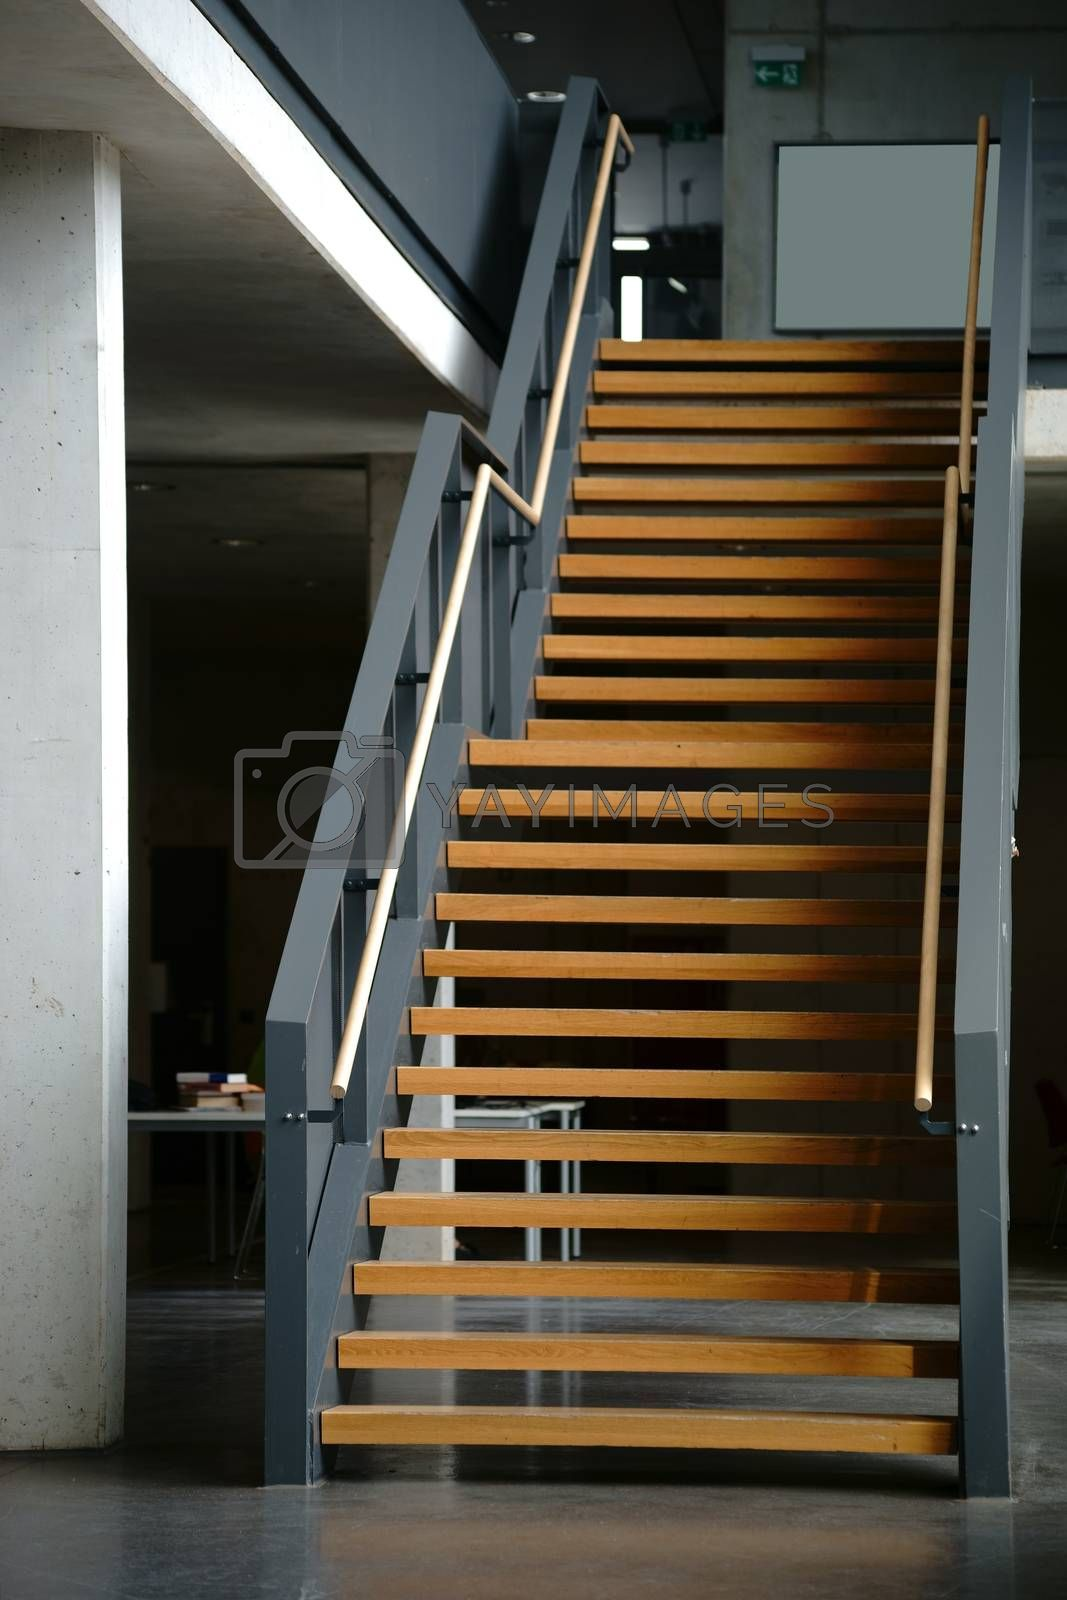 A staircase in a school building from the ground floor to the first floor.